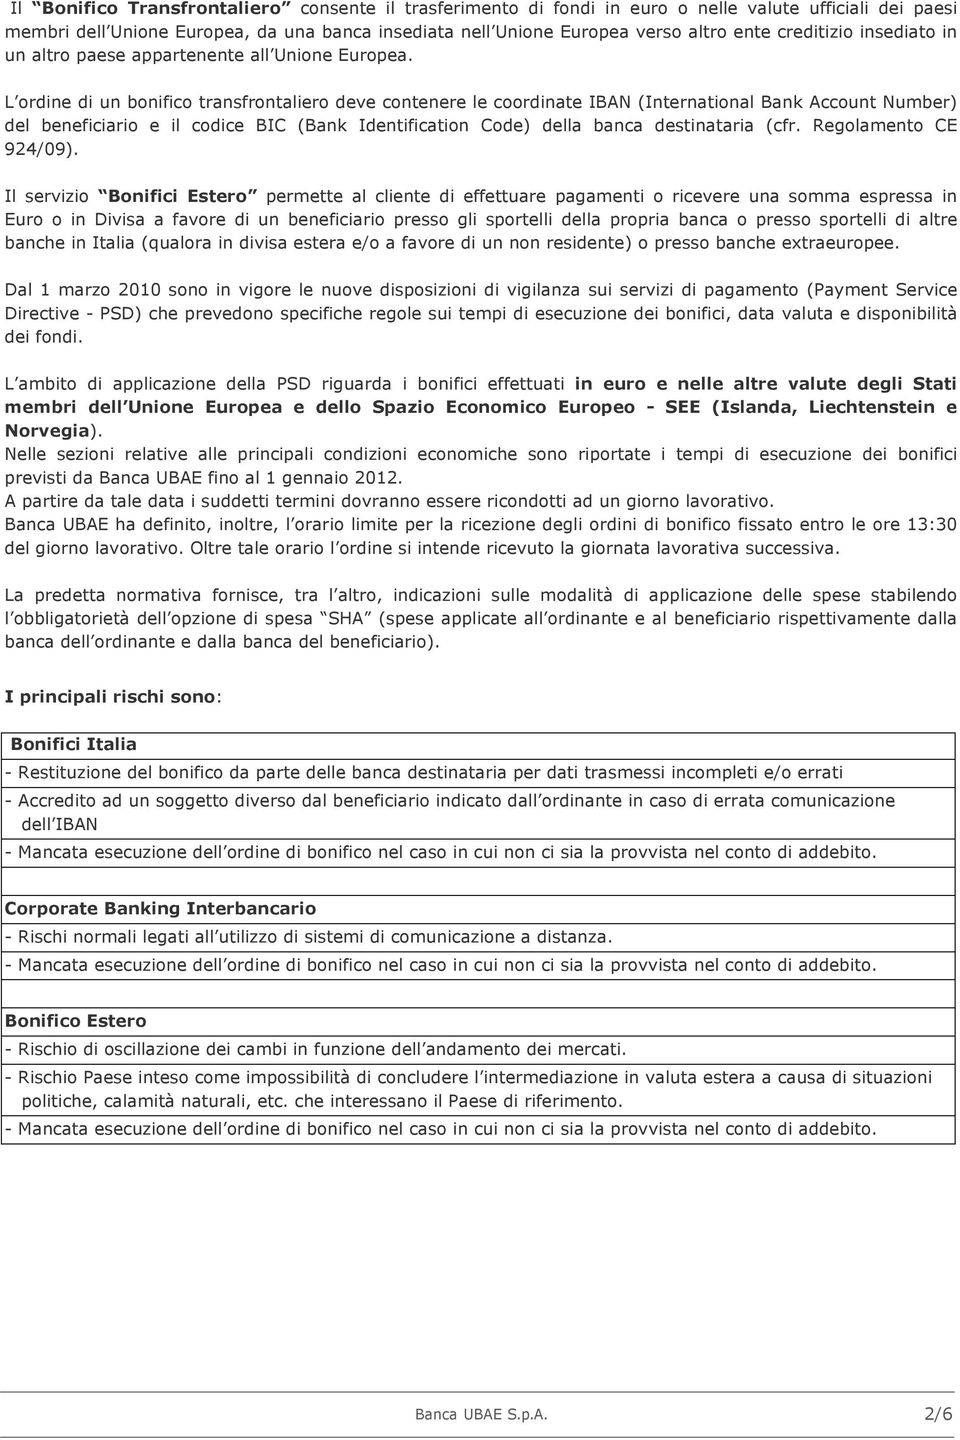 L ordine di un bonifico transfrontaliero deve contenere le coordinate IBAN (International Bank Account Number) del beneficiario e il codice BIC (Bank Identification Code) della banca destinataria